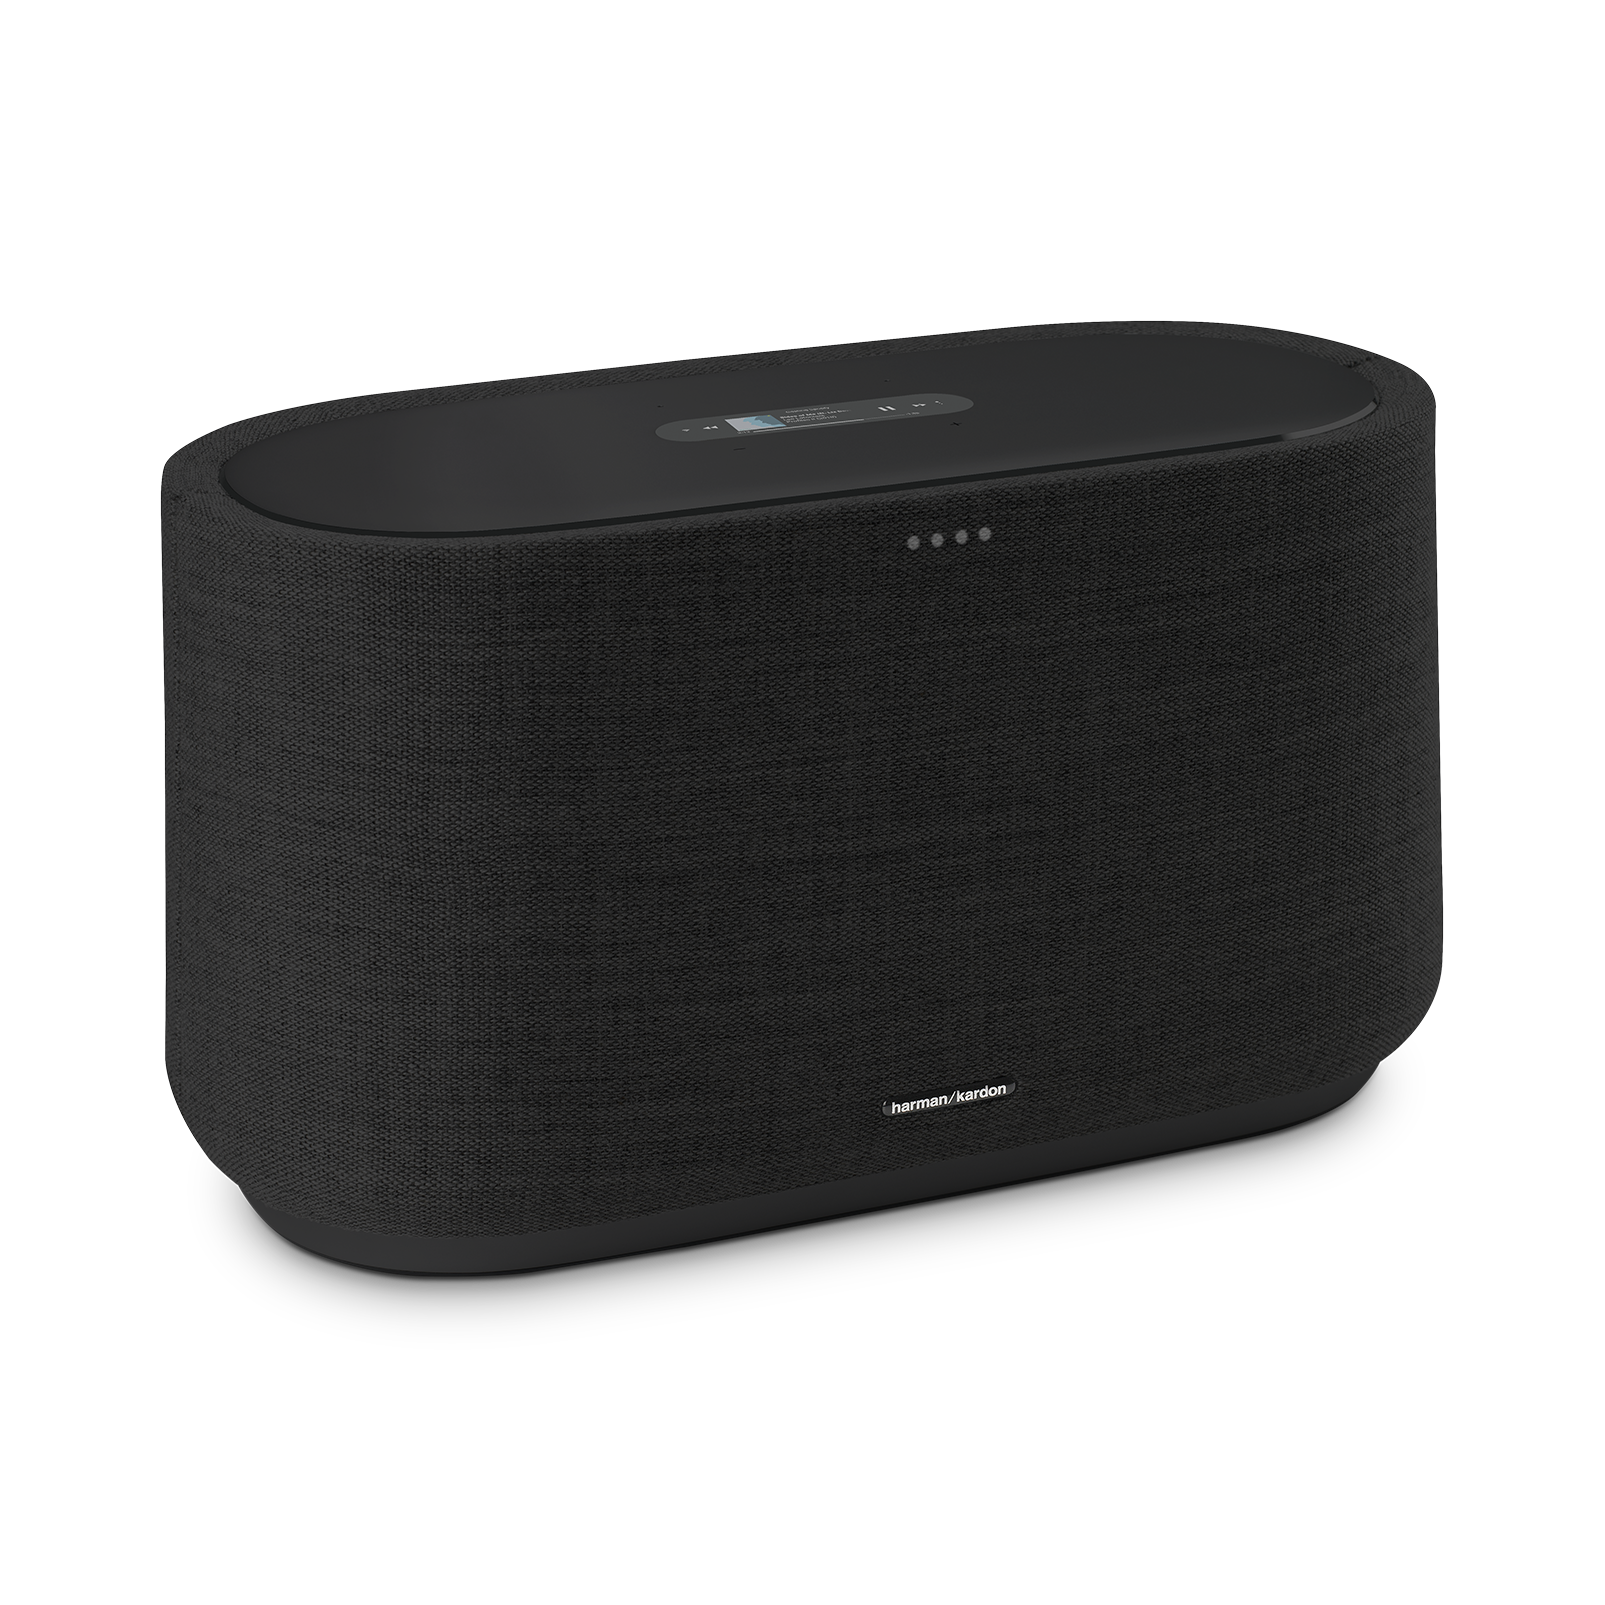 Harman Kardon Citation 500 - Black - Large Tabletop Smart Home Loudspeaker System - Hero